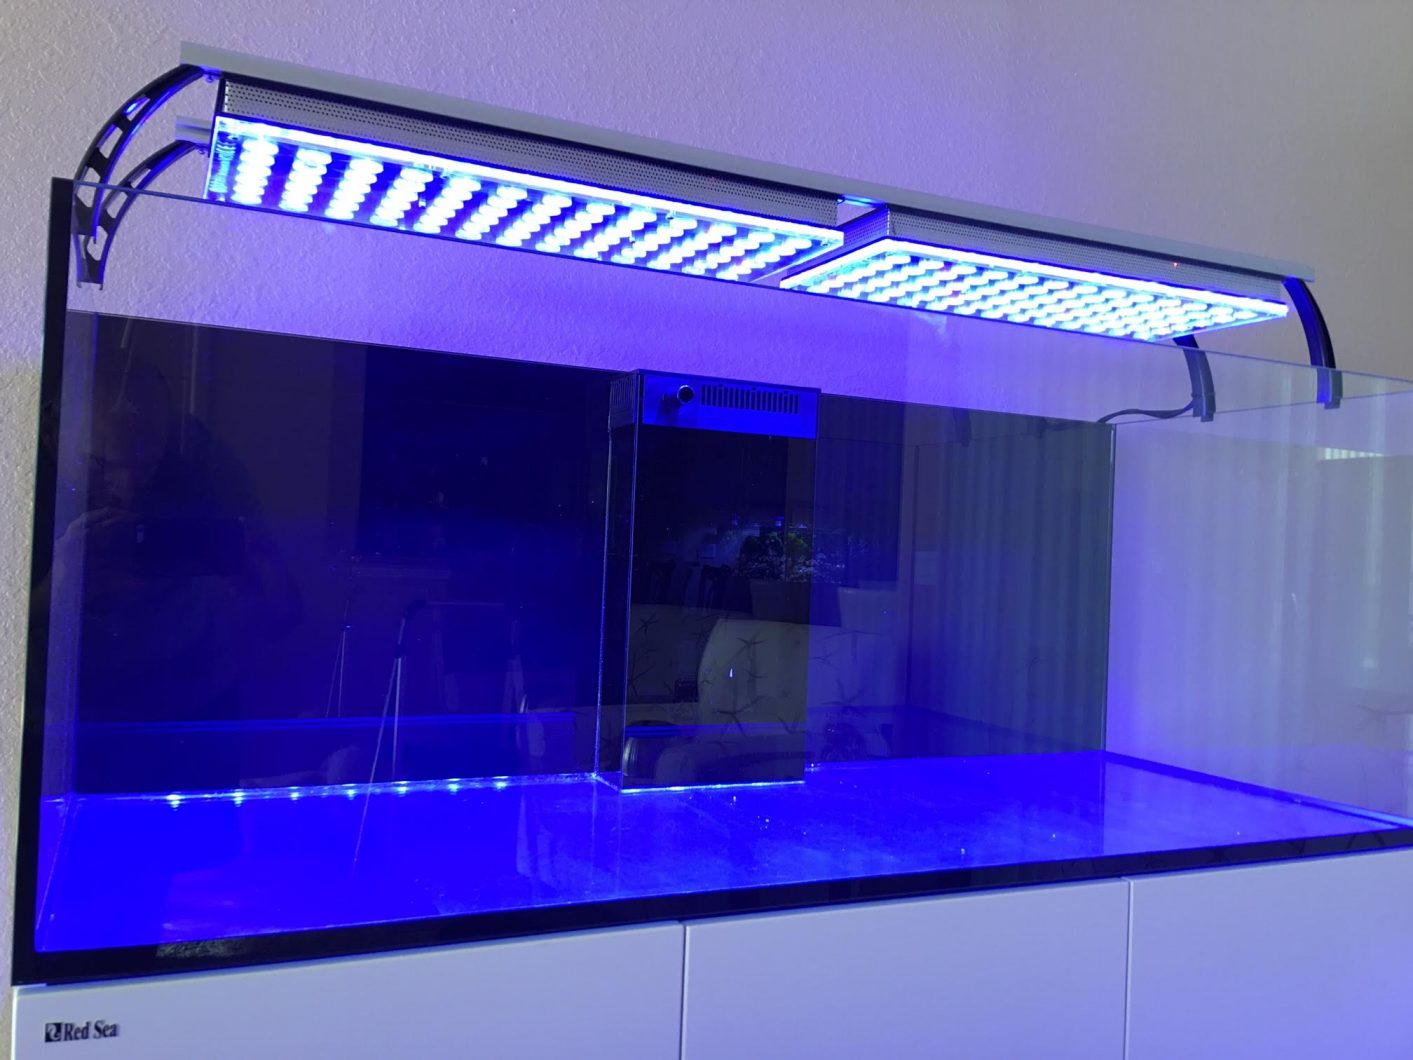 Orphek_Aquarium_LED_mounting systemer 7